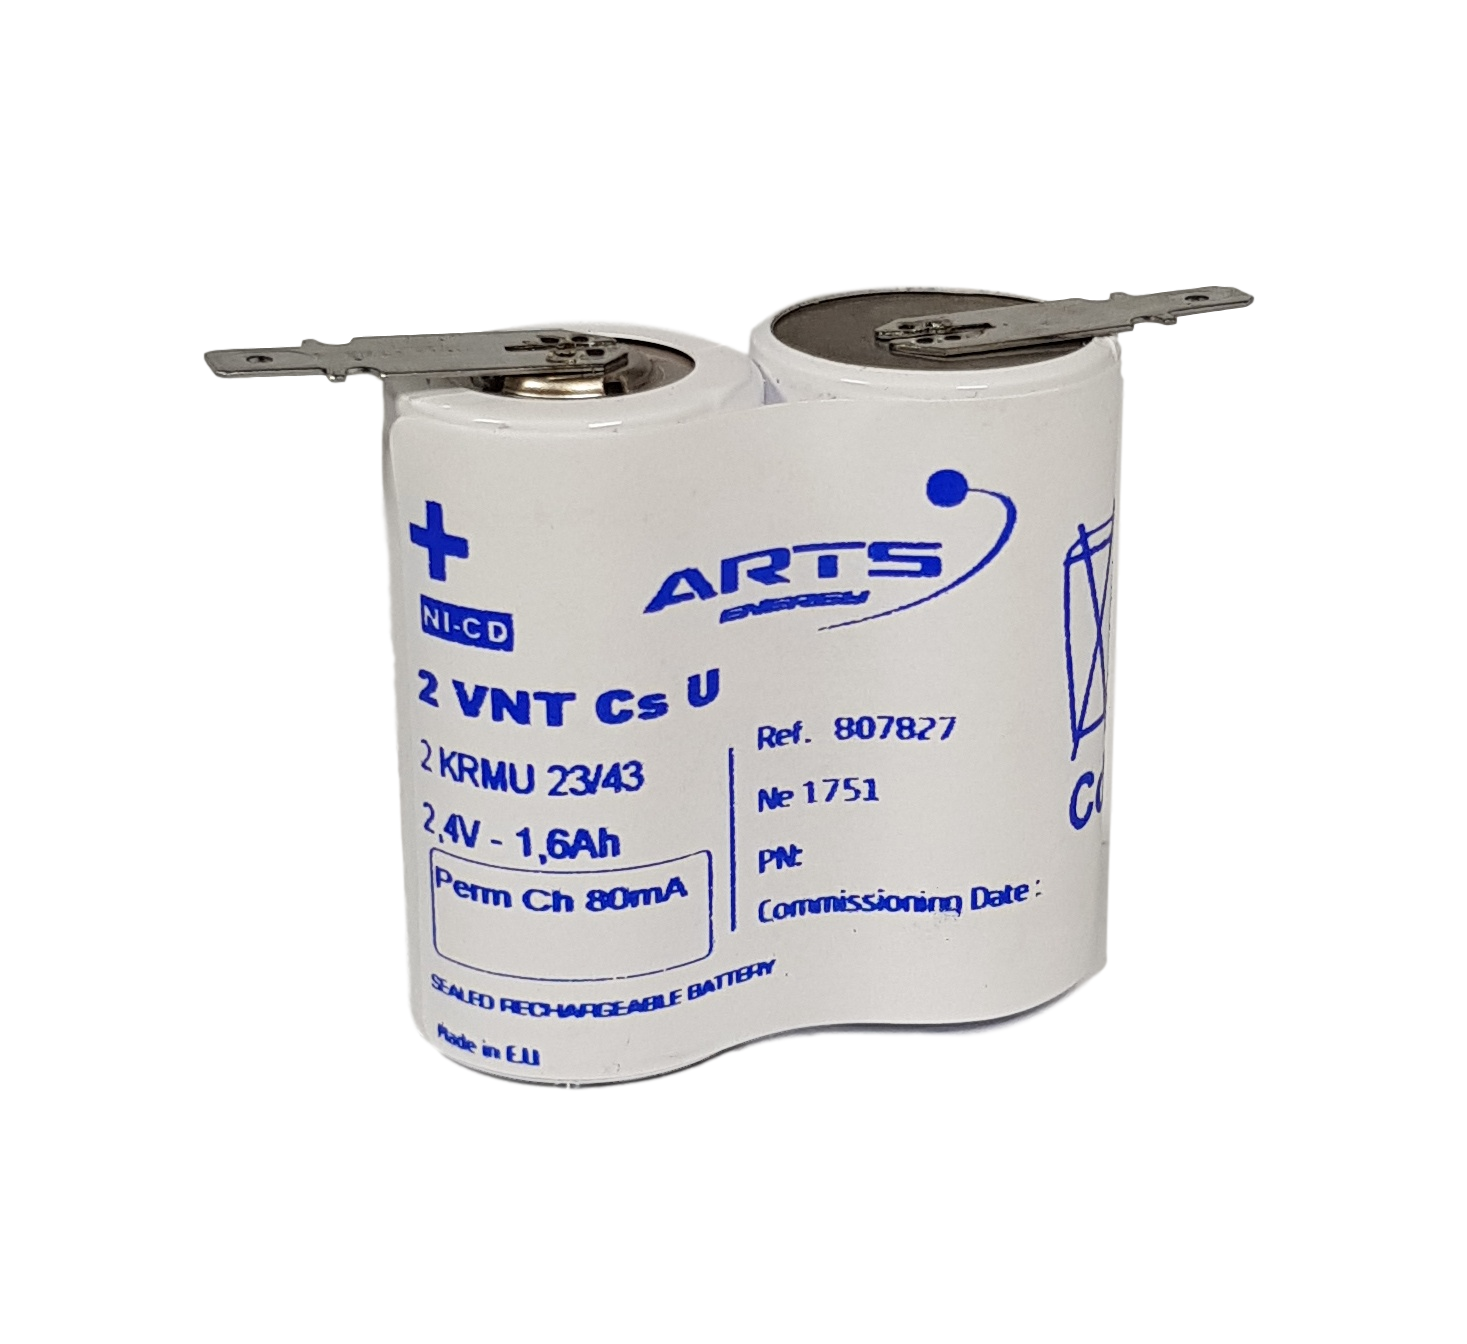 Arts Energy (Saft) NiCd 2,4V 1600mAh 2xCs VNT side by side met S11 aansluiting